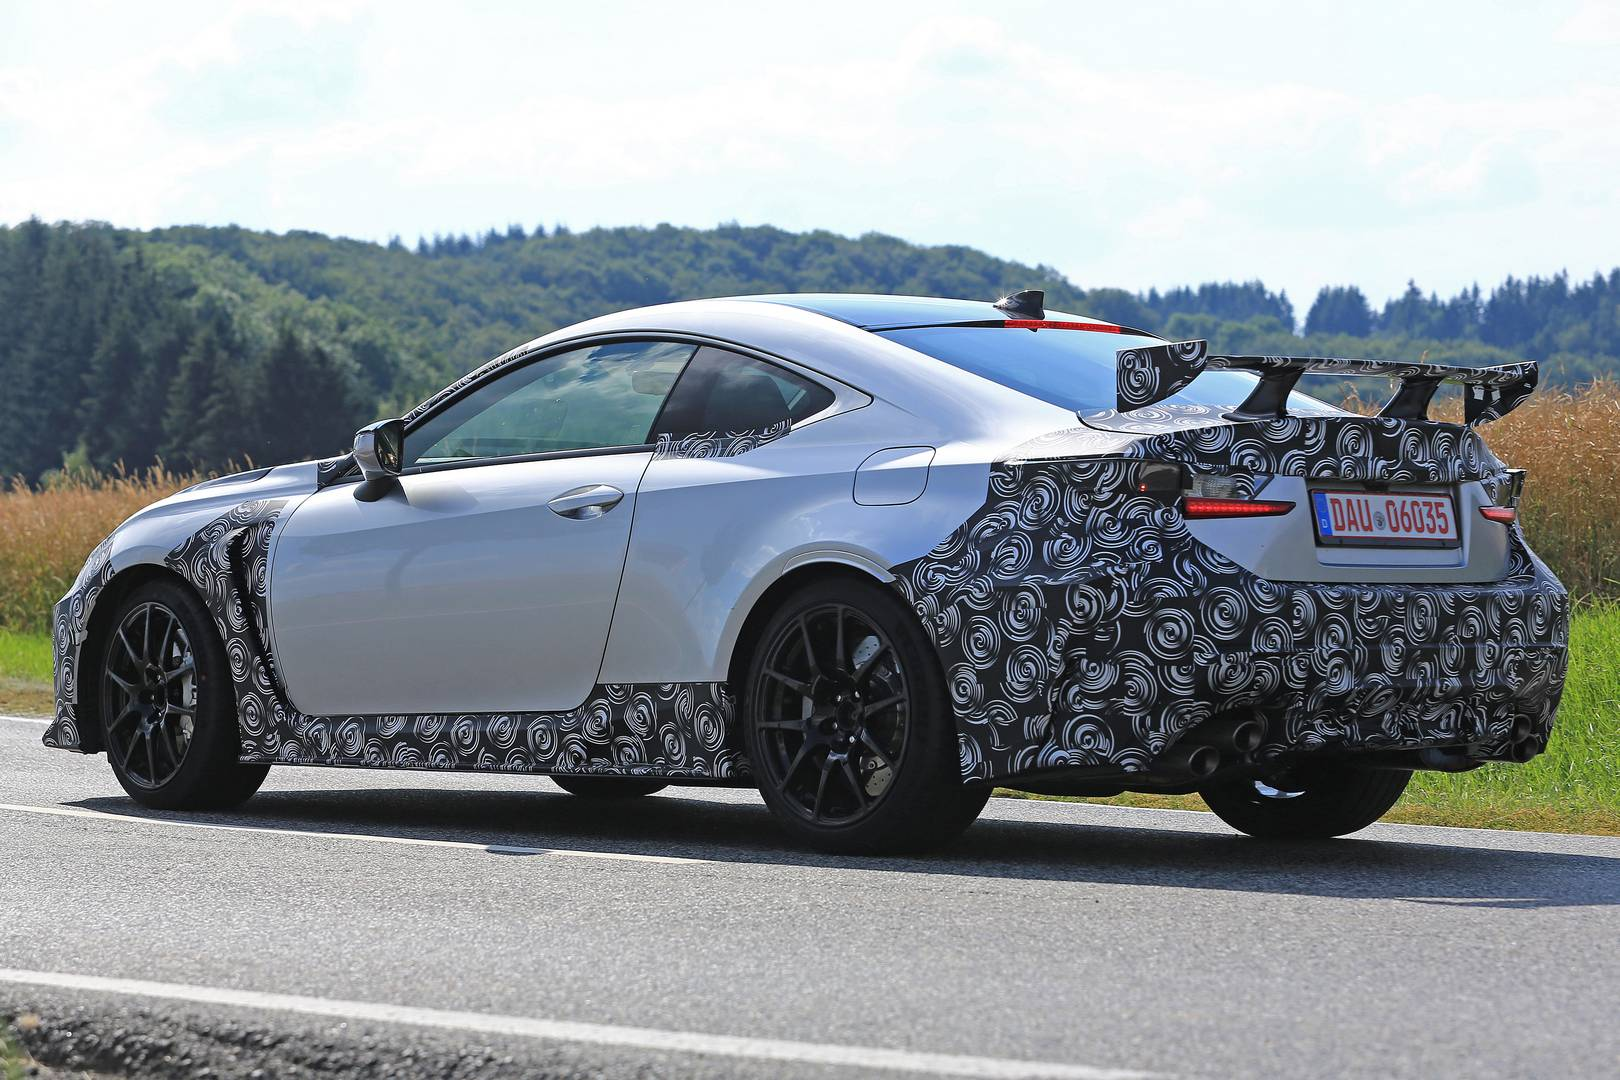 2019 Lexus Rc F Gt Spy Shots Emerge Gtspirit